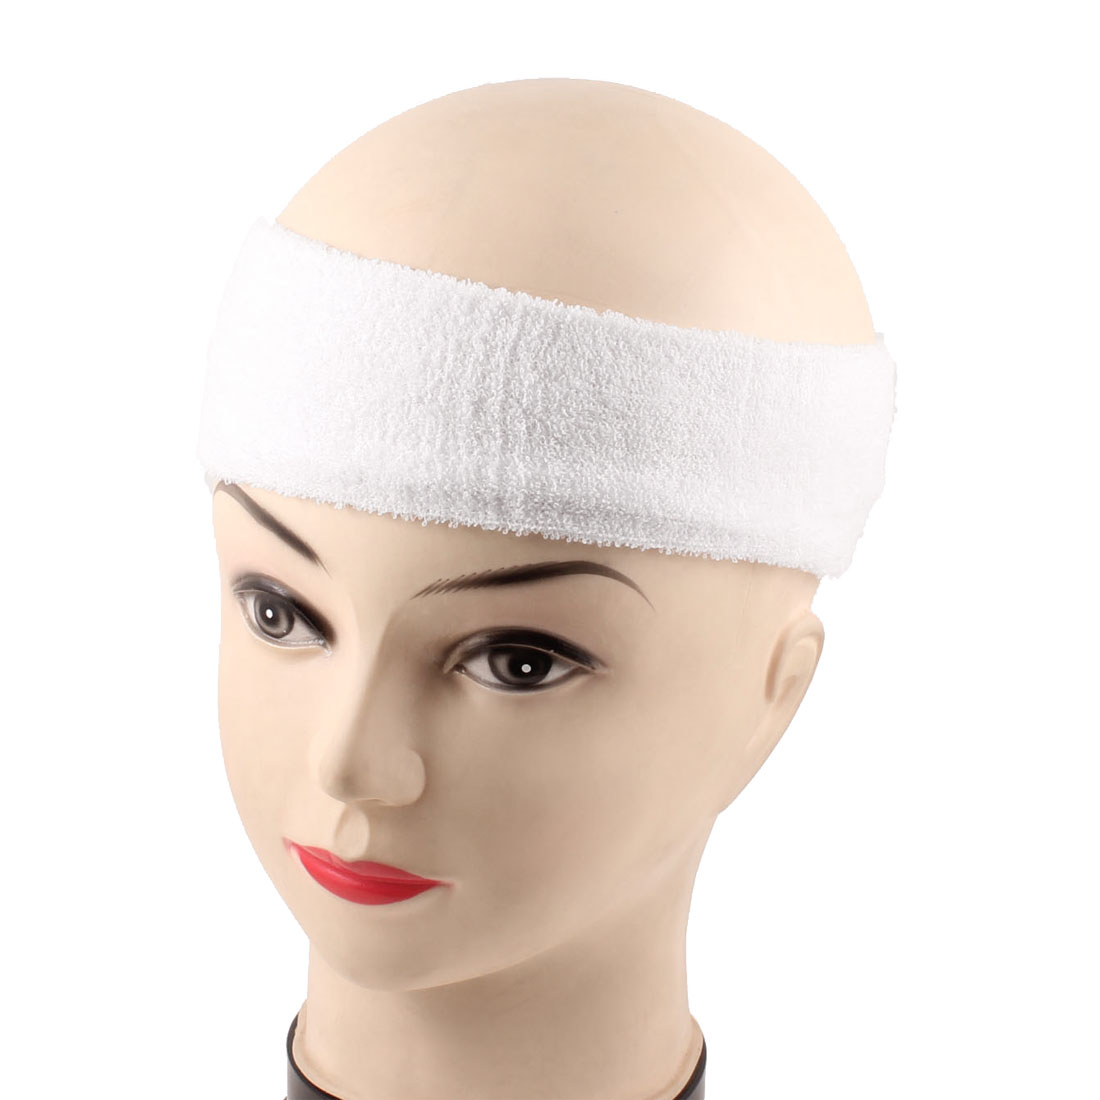 2 Pcs Tennis Exercises Protective Stretchy Terry Head HeadBand White